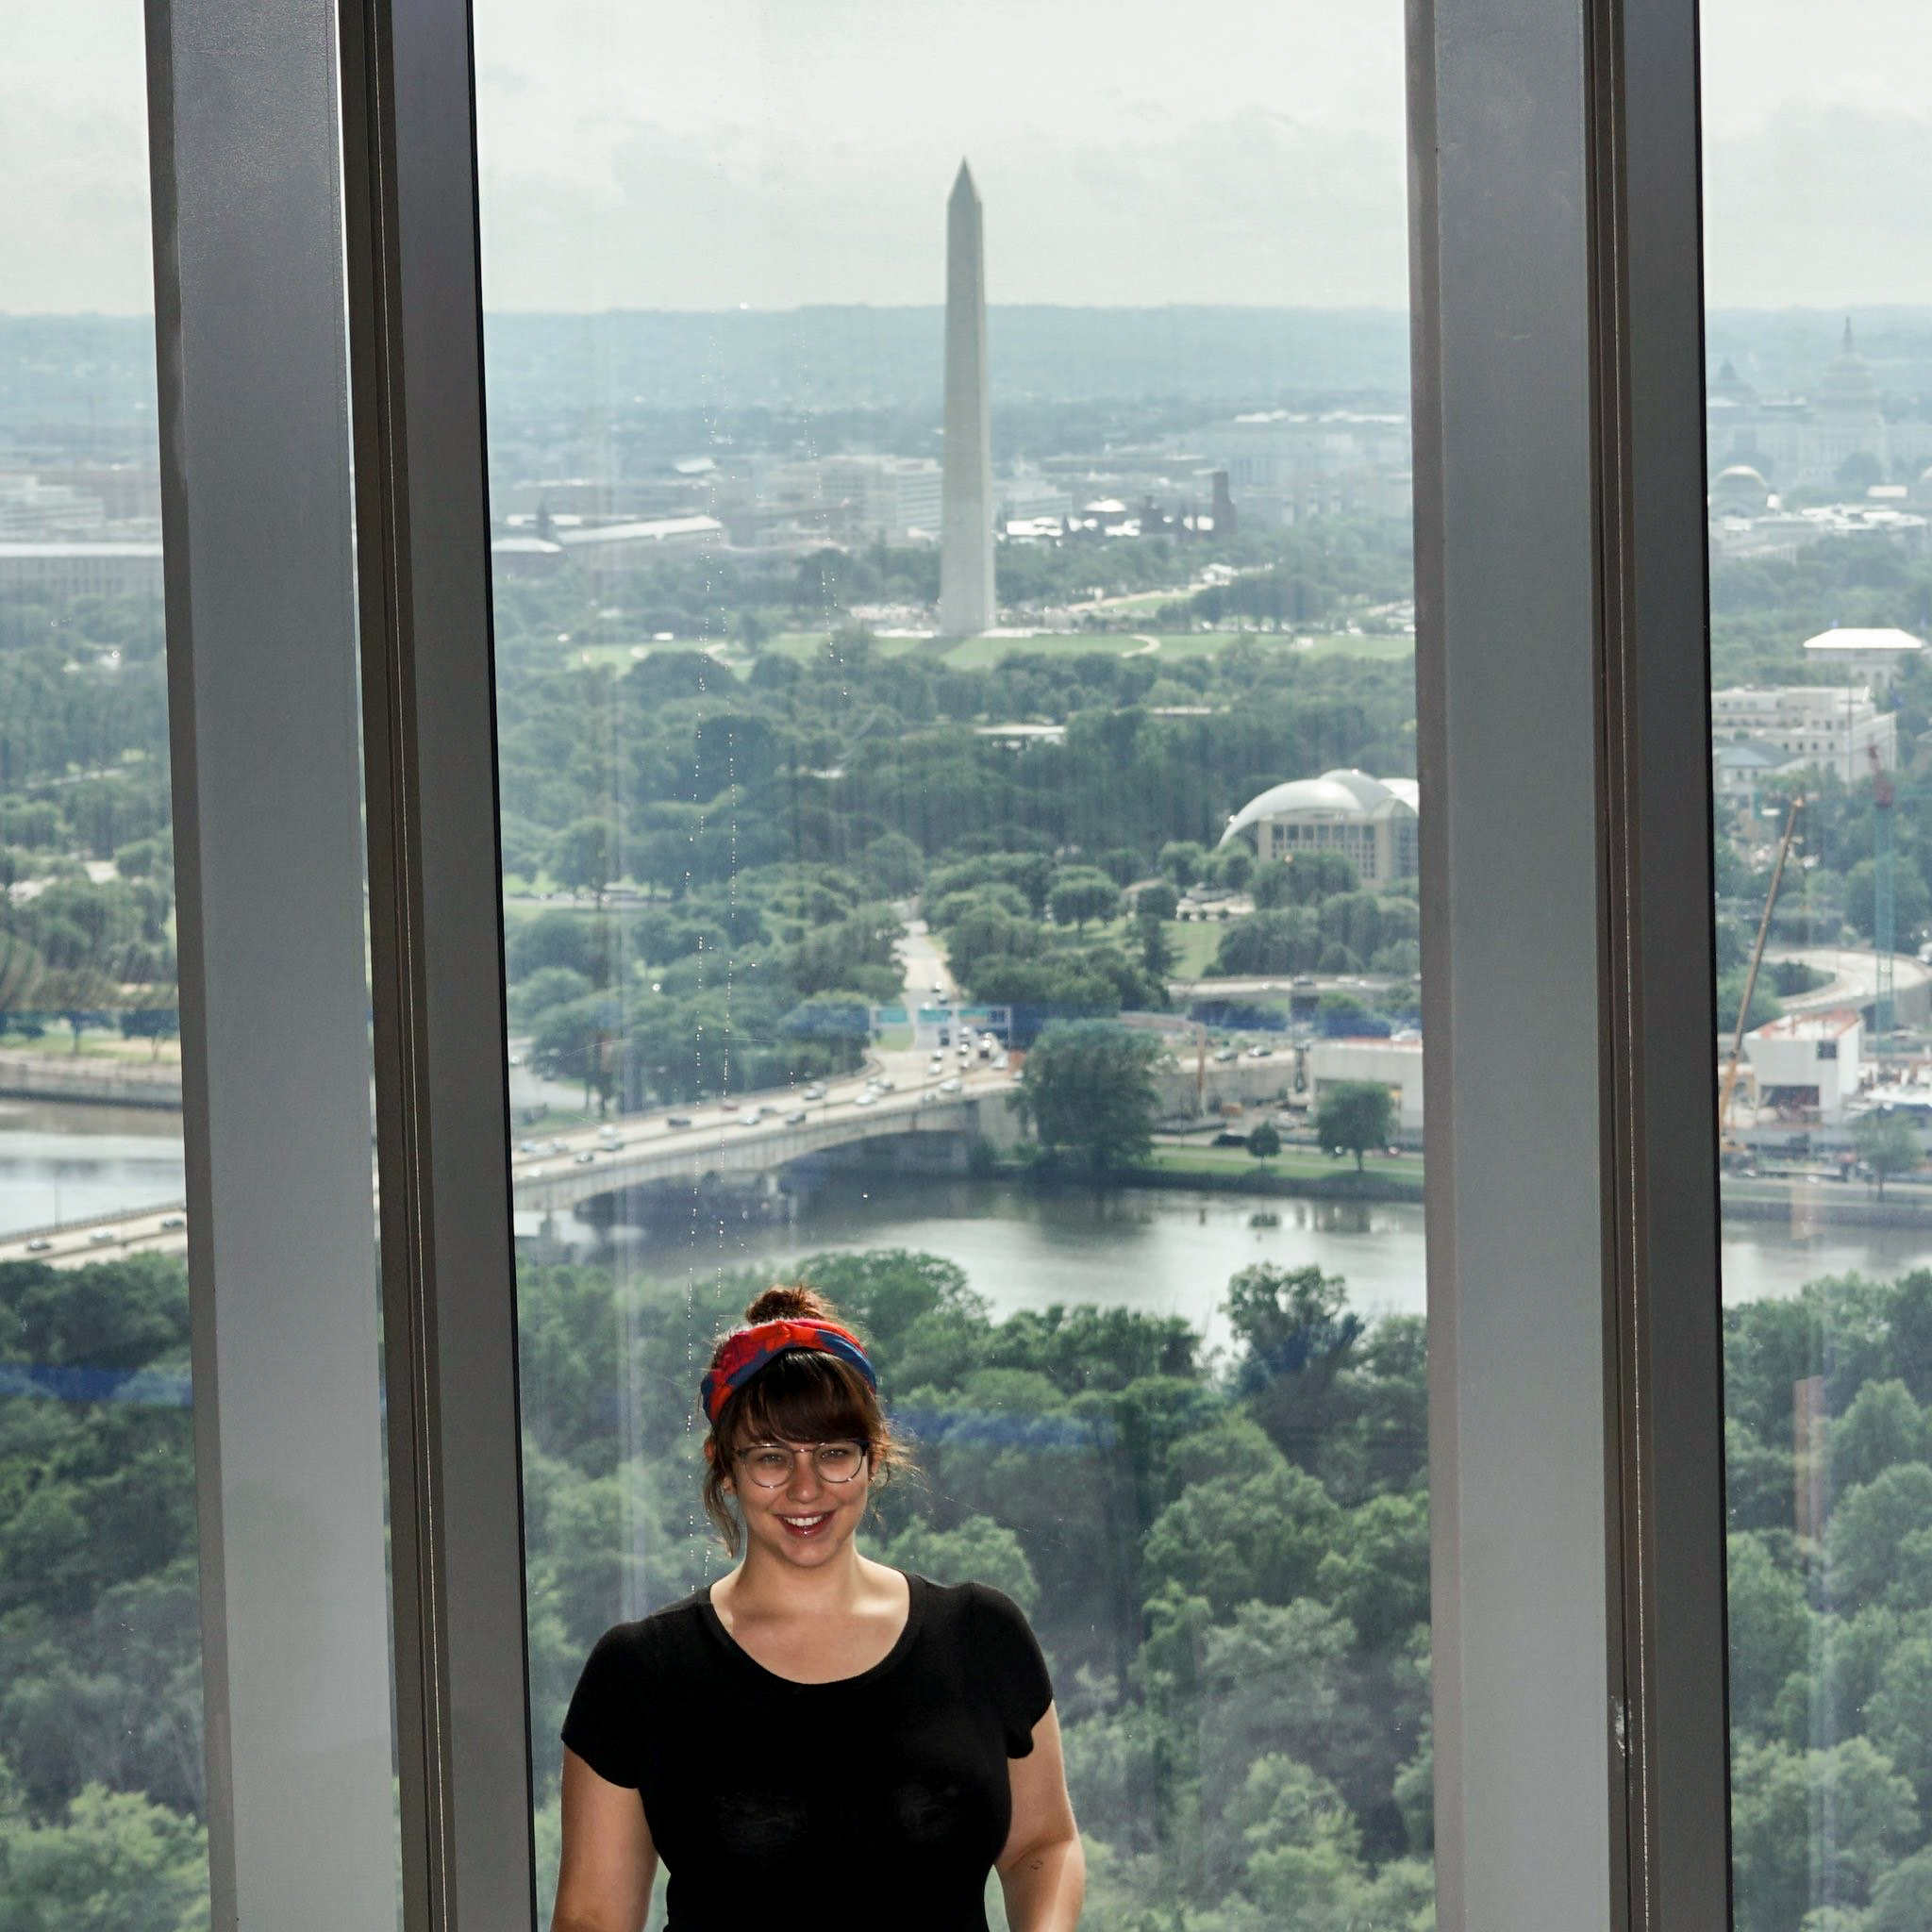 For the selfie challenged, you can scan a QR code at The Observation Deck and a camera mounted on the opposite wall will snap a pic for you and send it to your phone. (Image courtesy of The View of D.C.)<br>